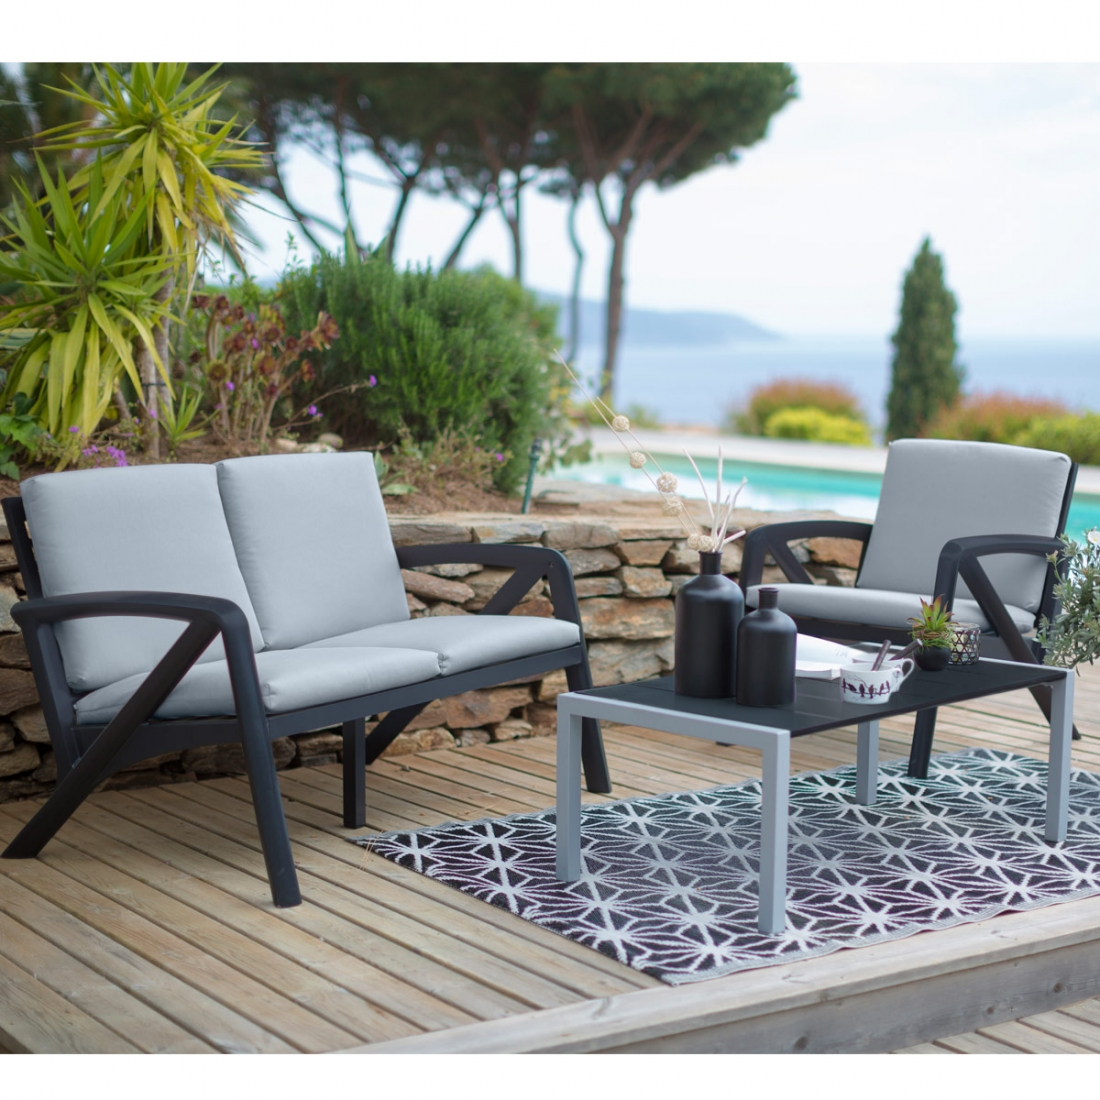 Salon de jardin lounge sunday barcelone design grosfillex for Ensemble de salon